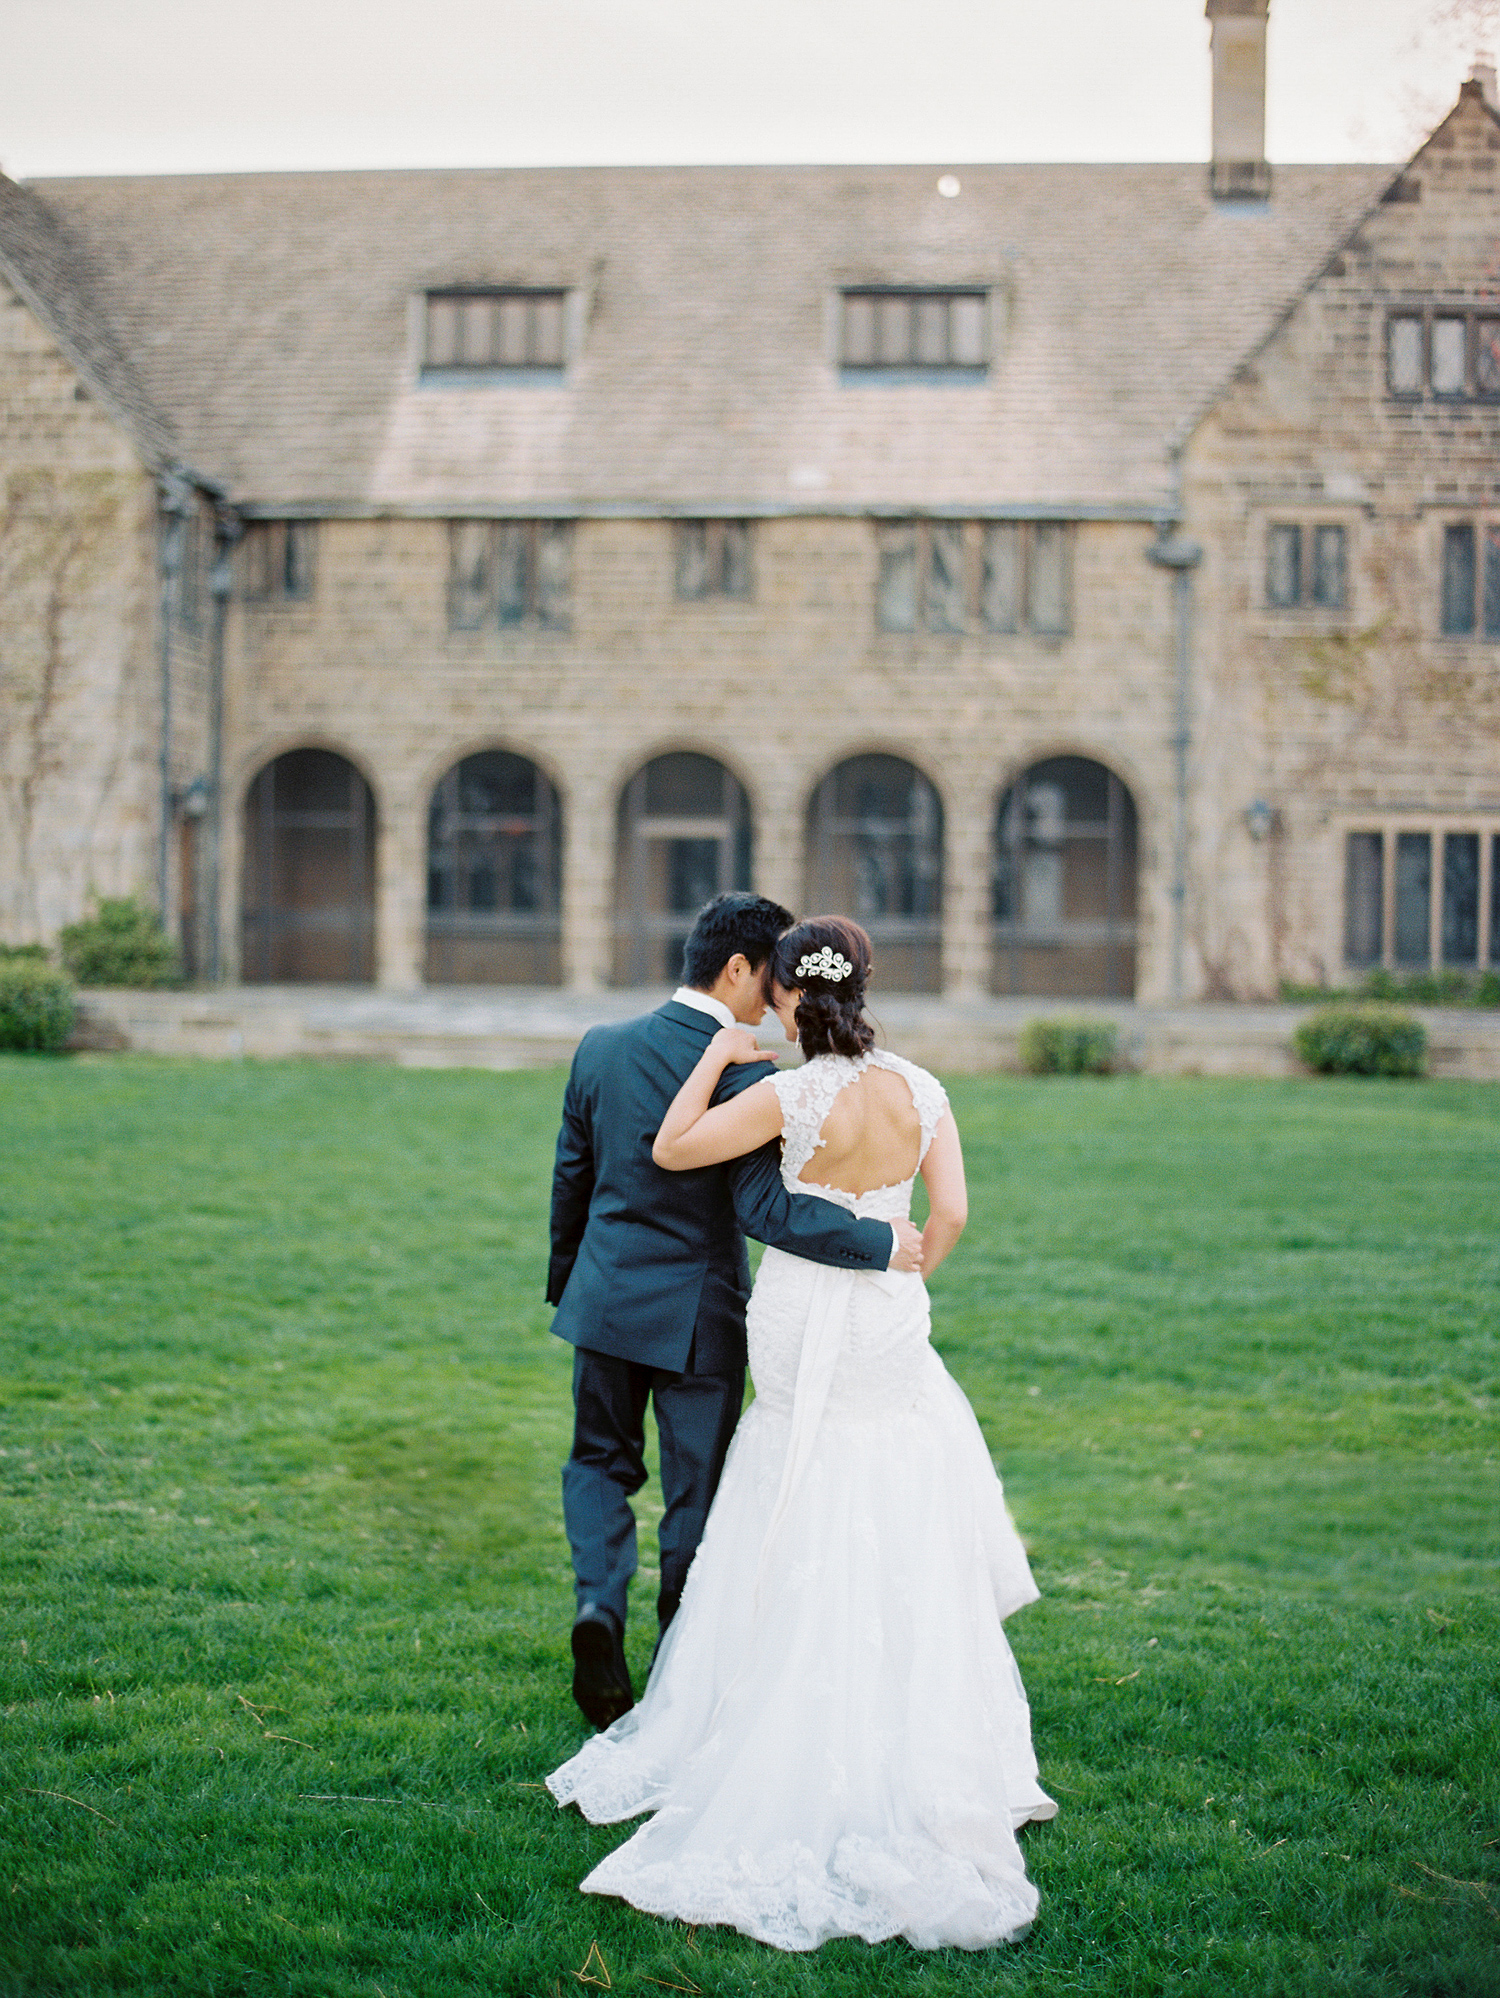 ryan-flynn-photography-best-wedding-photos-2014-0148.JPG